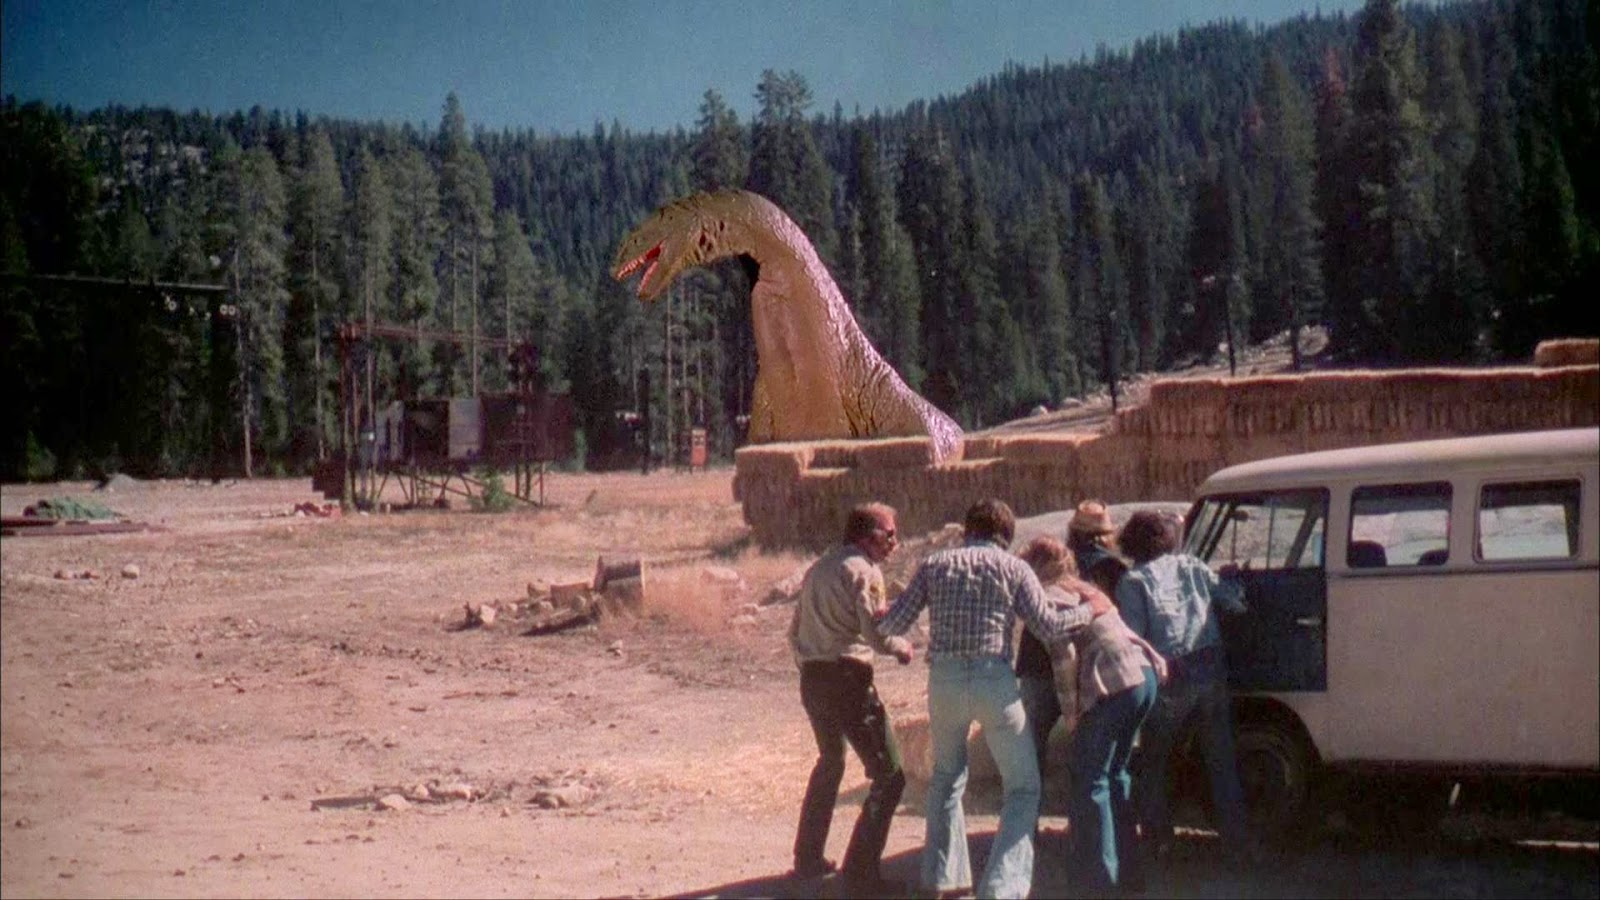 The stop-motion animated dinosaur emerges from the lake in The Crater Lake Monster (1977)